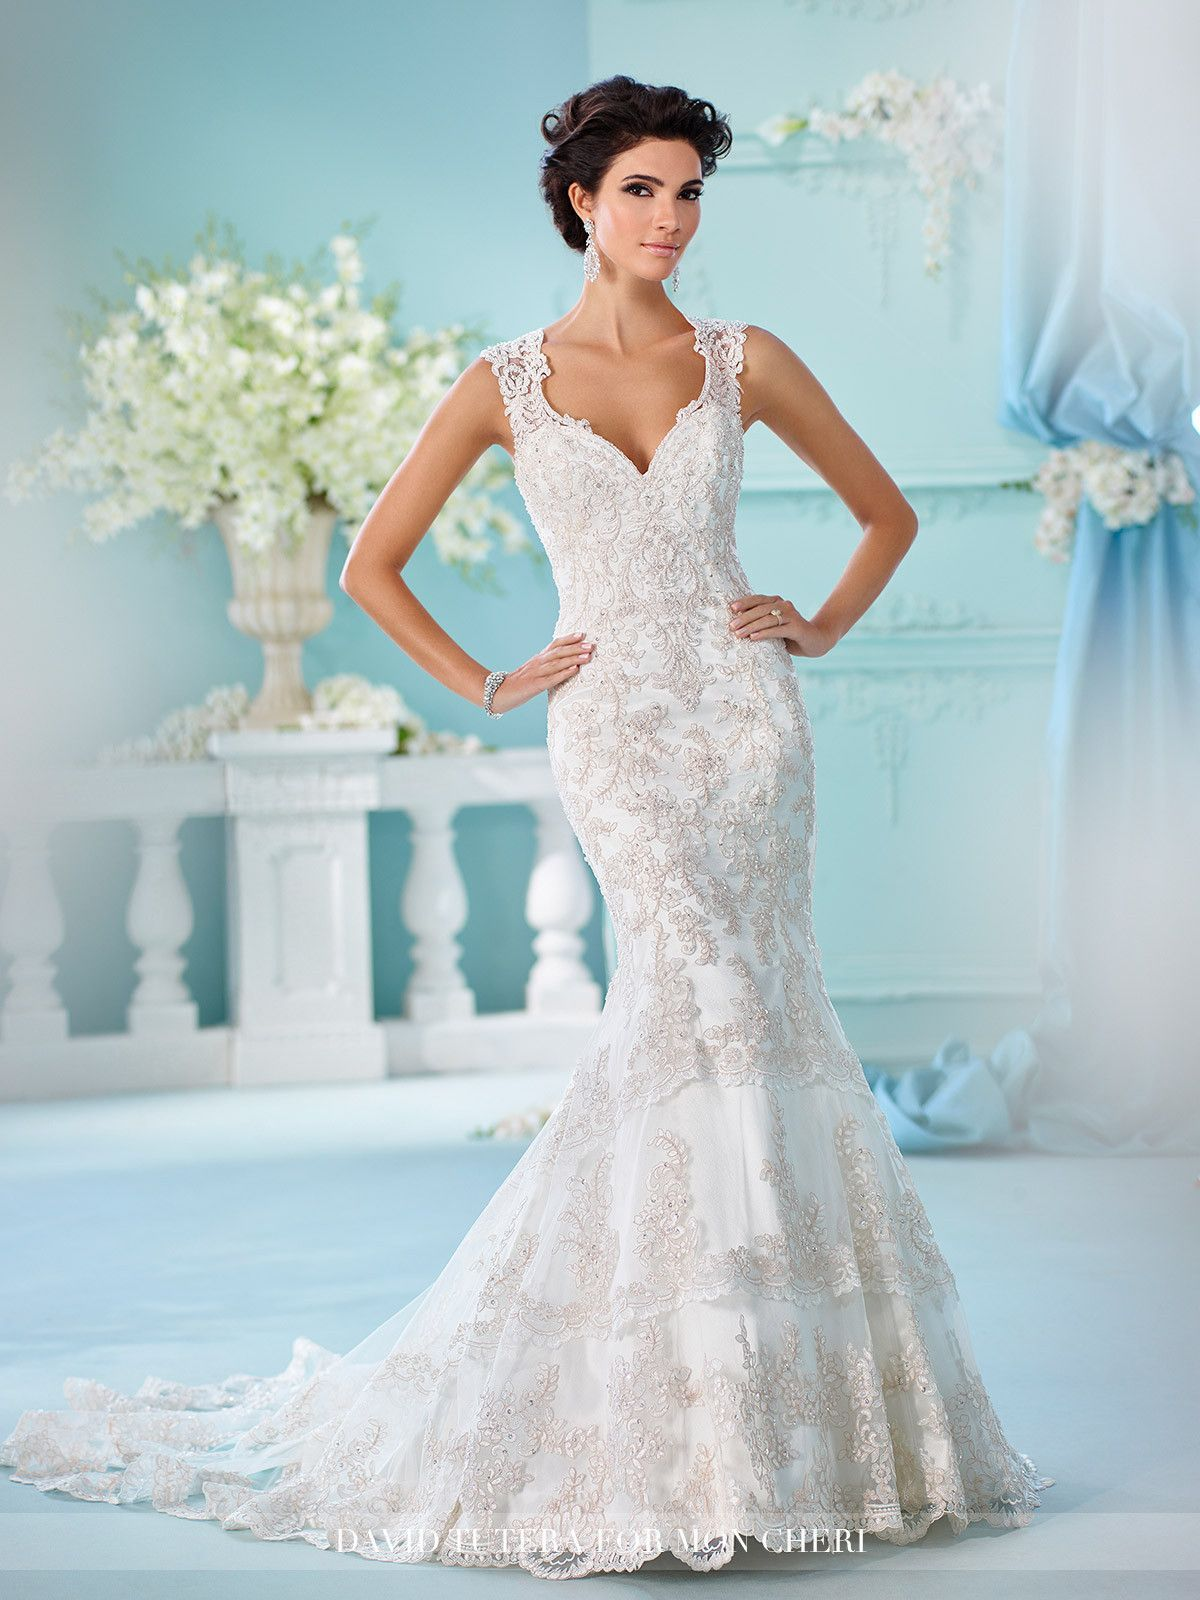 David tutera nerida all dressed up bridal gown david